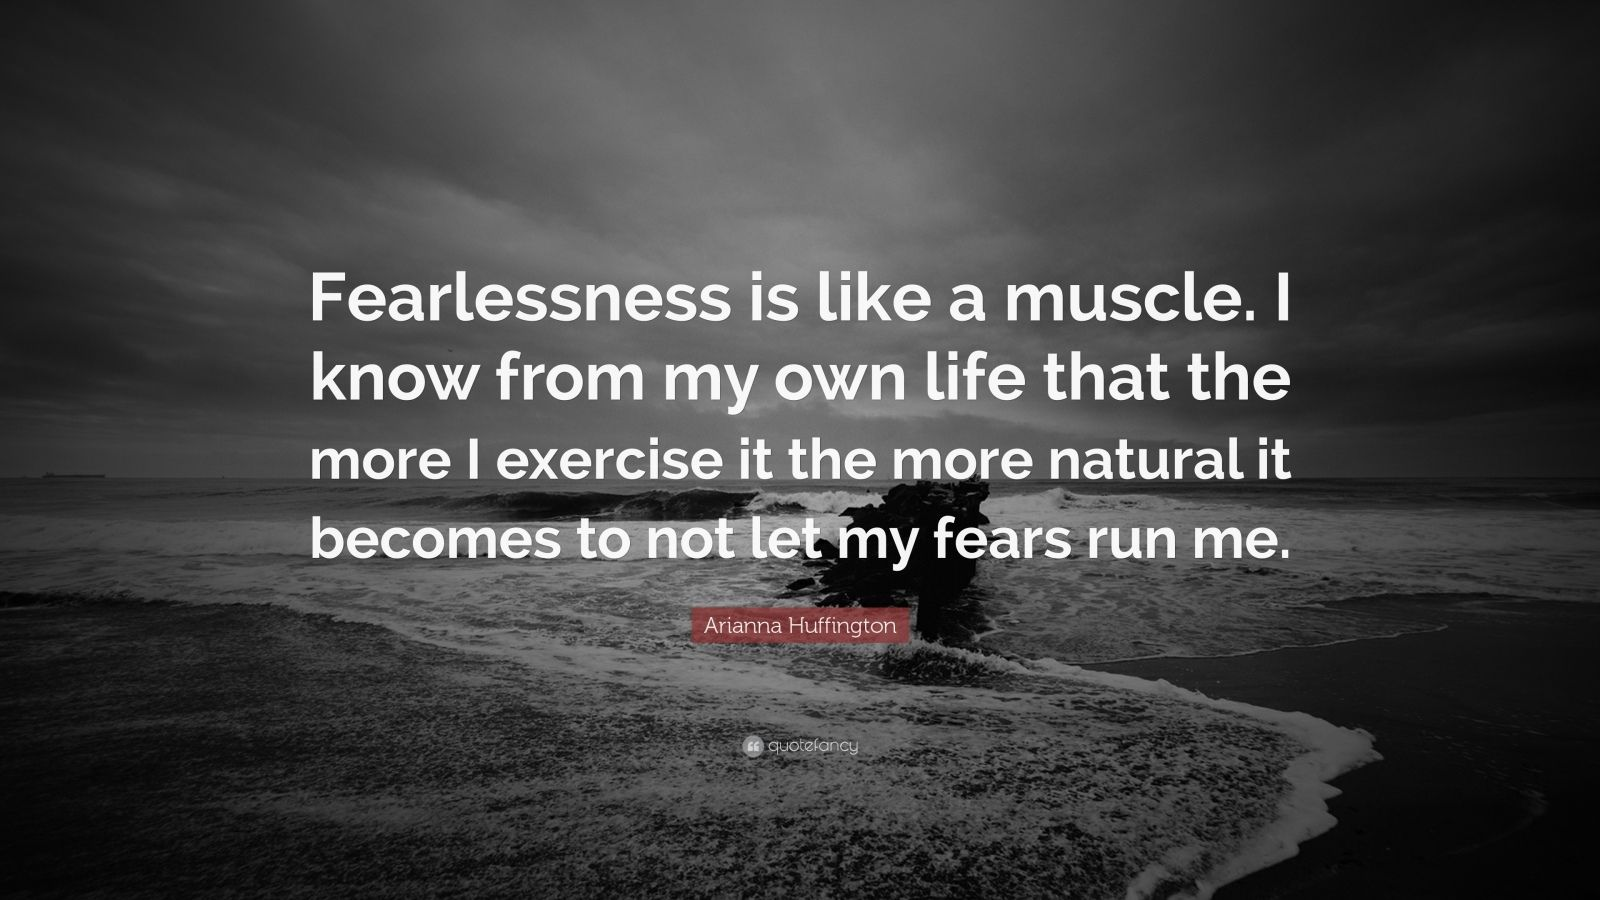 """Arianna Huffington Quote: """"Fearlessness is like a muscle. I know from my own life that the more I exercise it the more natural it becomes to not let my fears run me."""""""